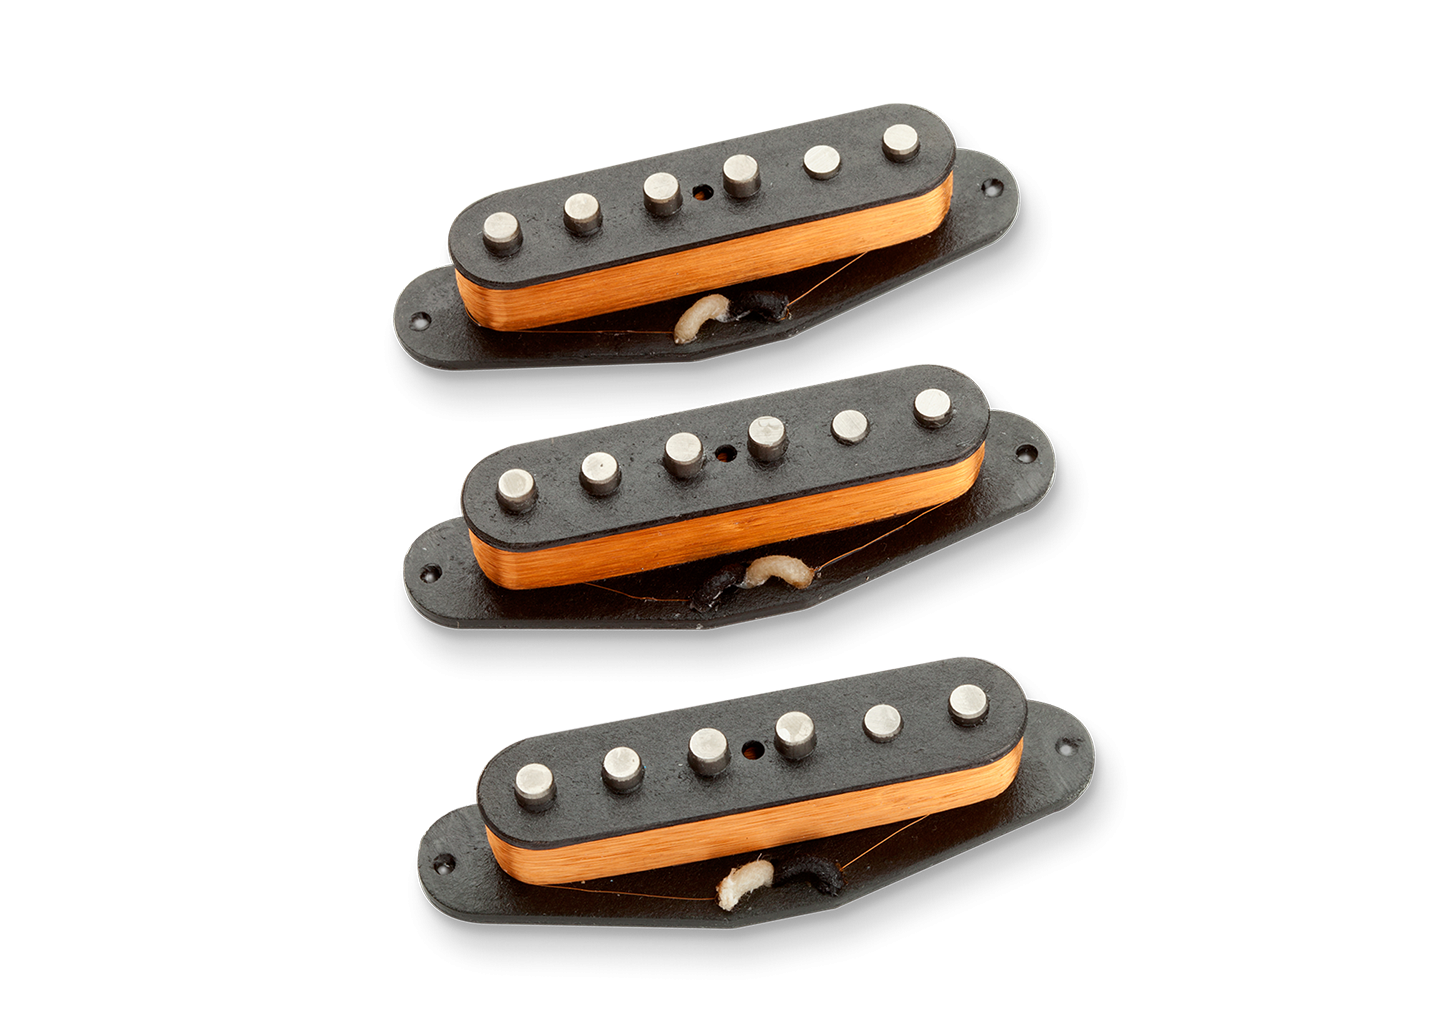 Seymour Duncan Alnico II Pro Staggered Strat APS-1S Calibrated Set